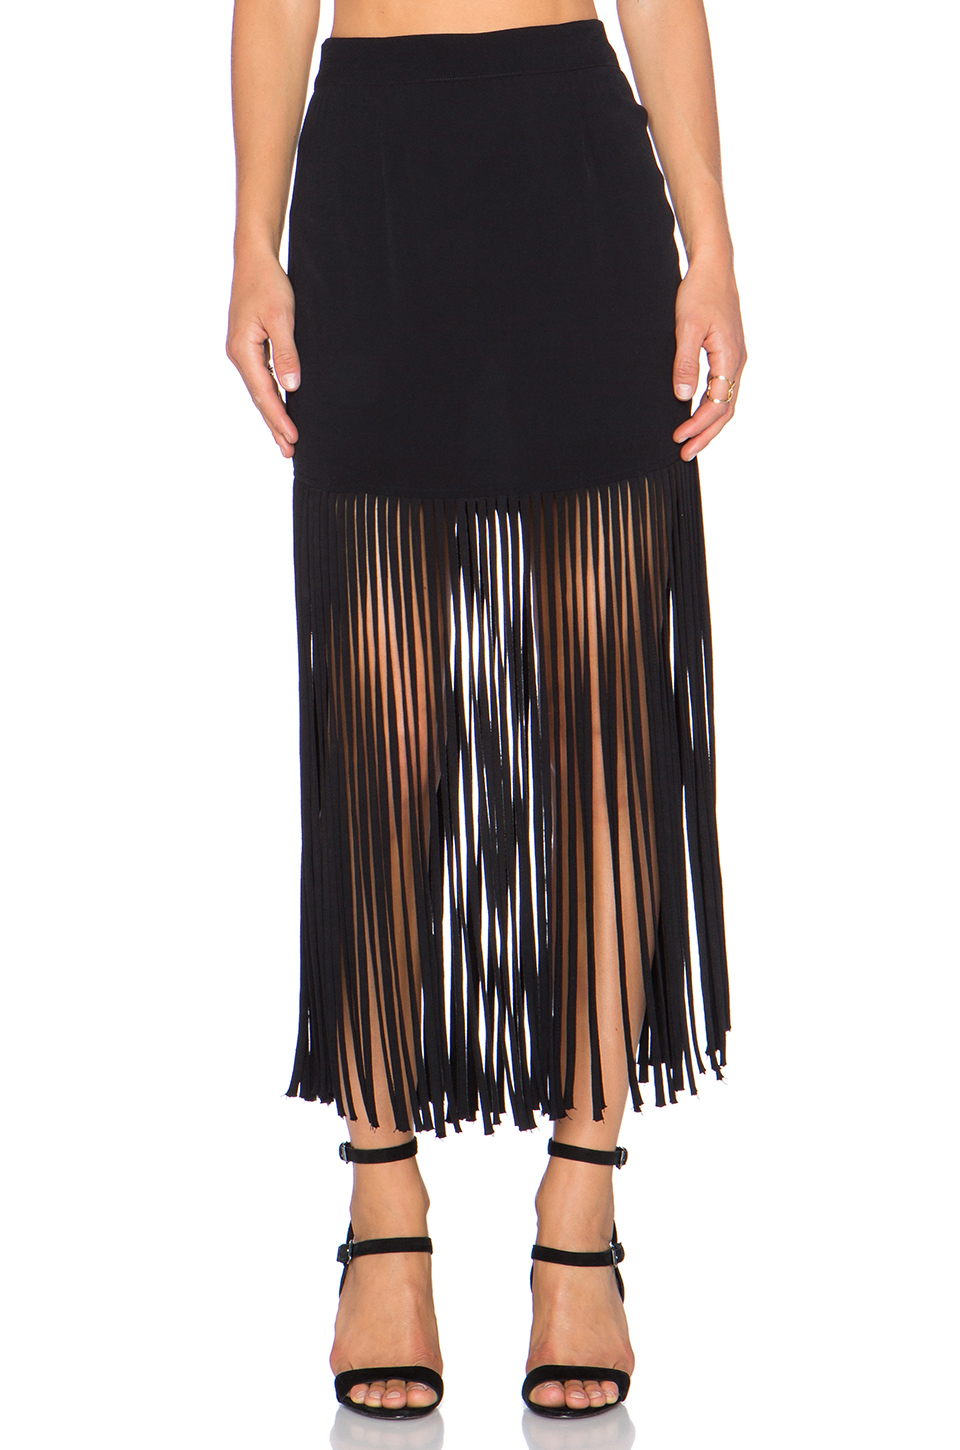 Fringe Black Skirt - results from brands Mac Duggal, TERANI, Minnetonka, products like Women's Vega Fringe Skirt, City Chic 'Eyelash Evie' Lace & Chiffon Cocktail Dress (Plus Size), ATM Fringe .